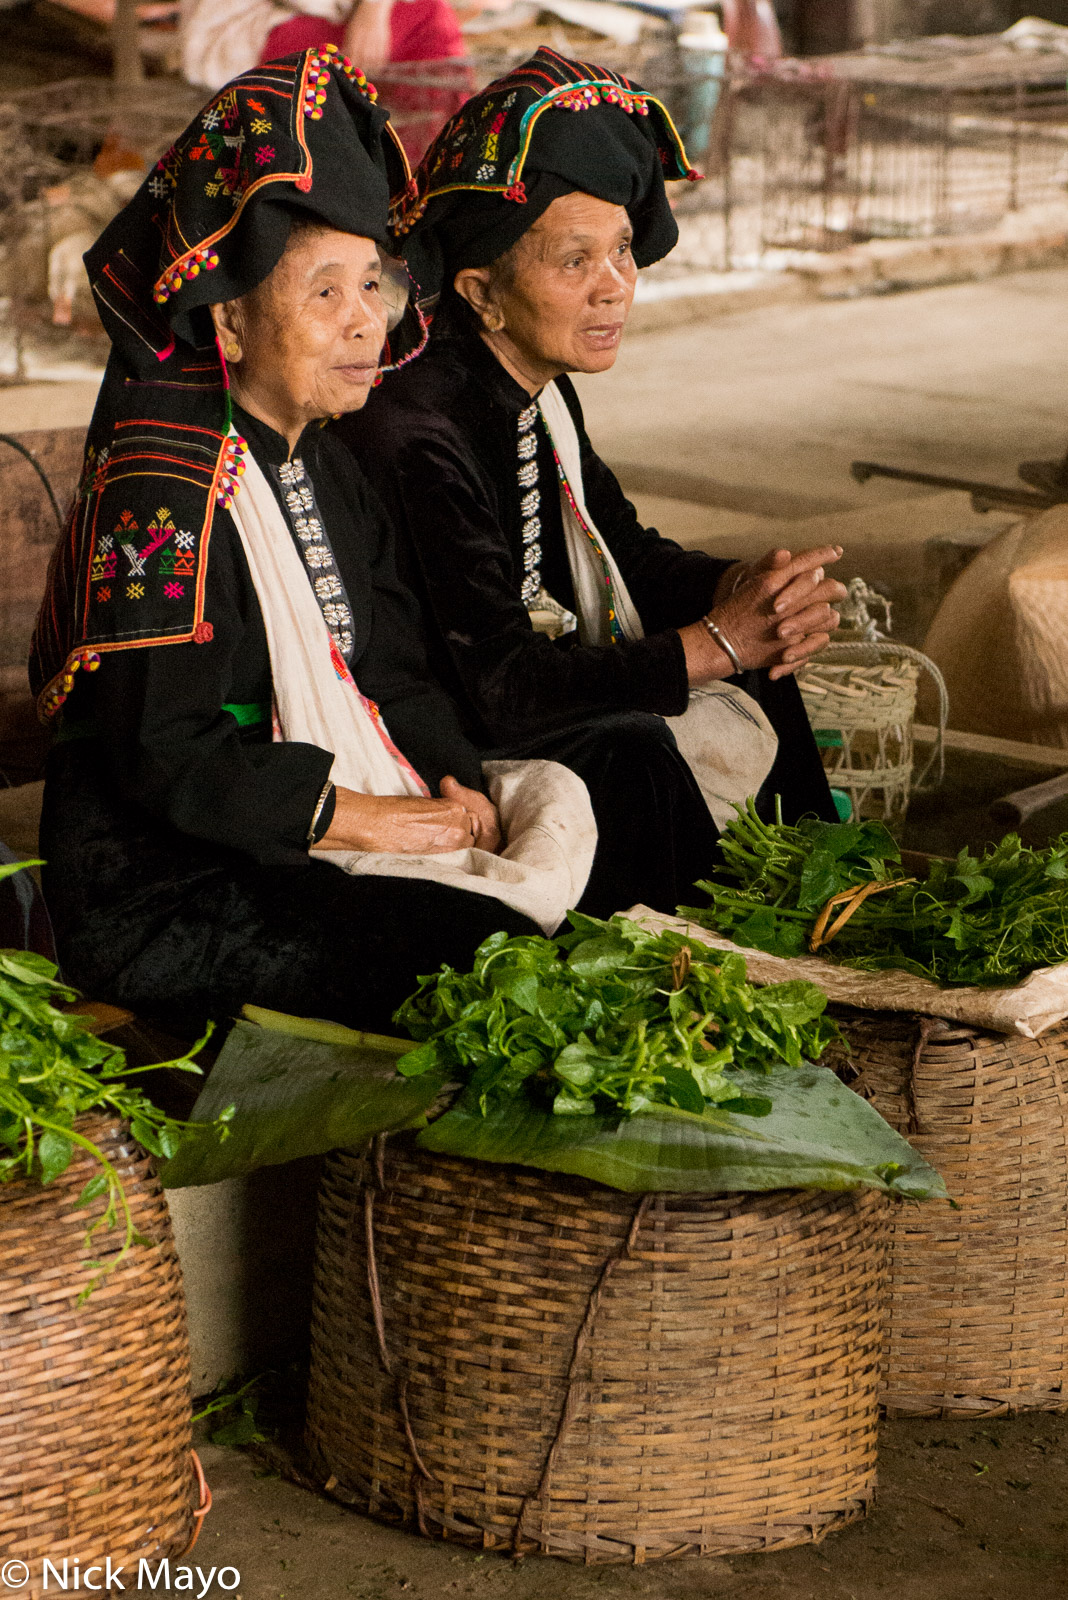 Two Black Thai women selling vegetables at Thuan Chau market.